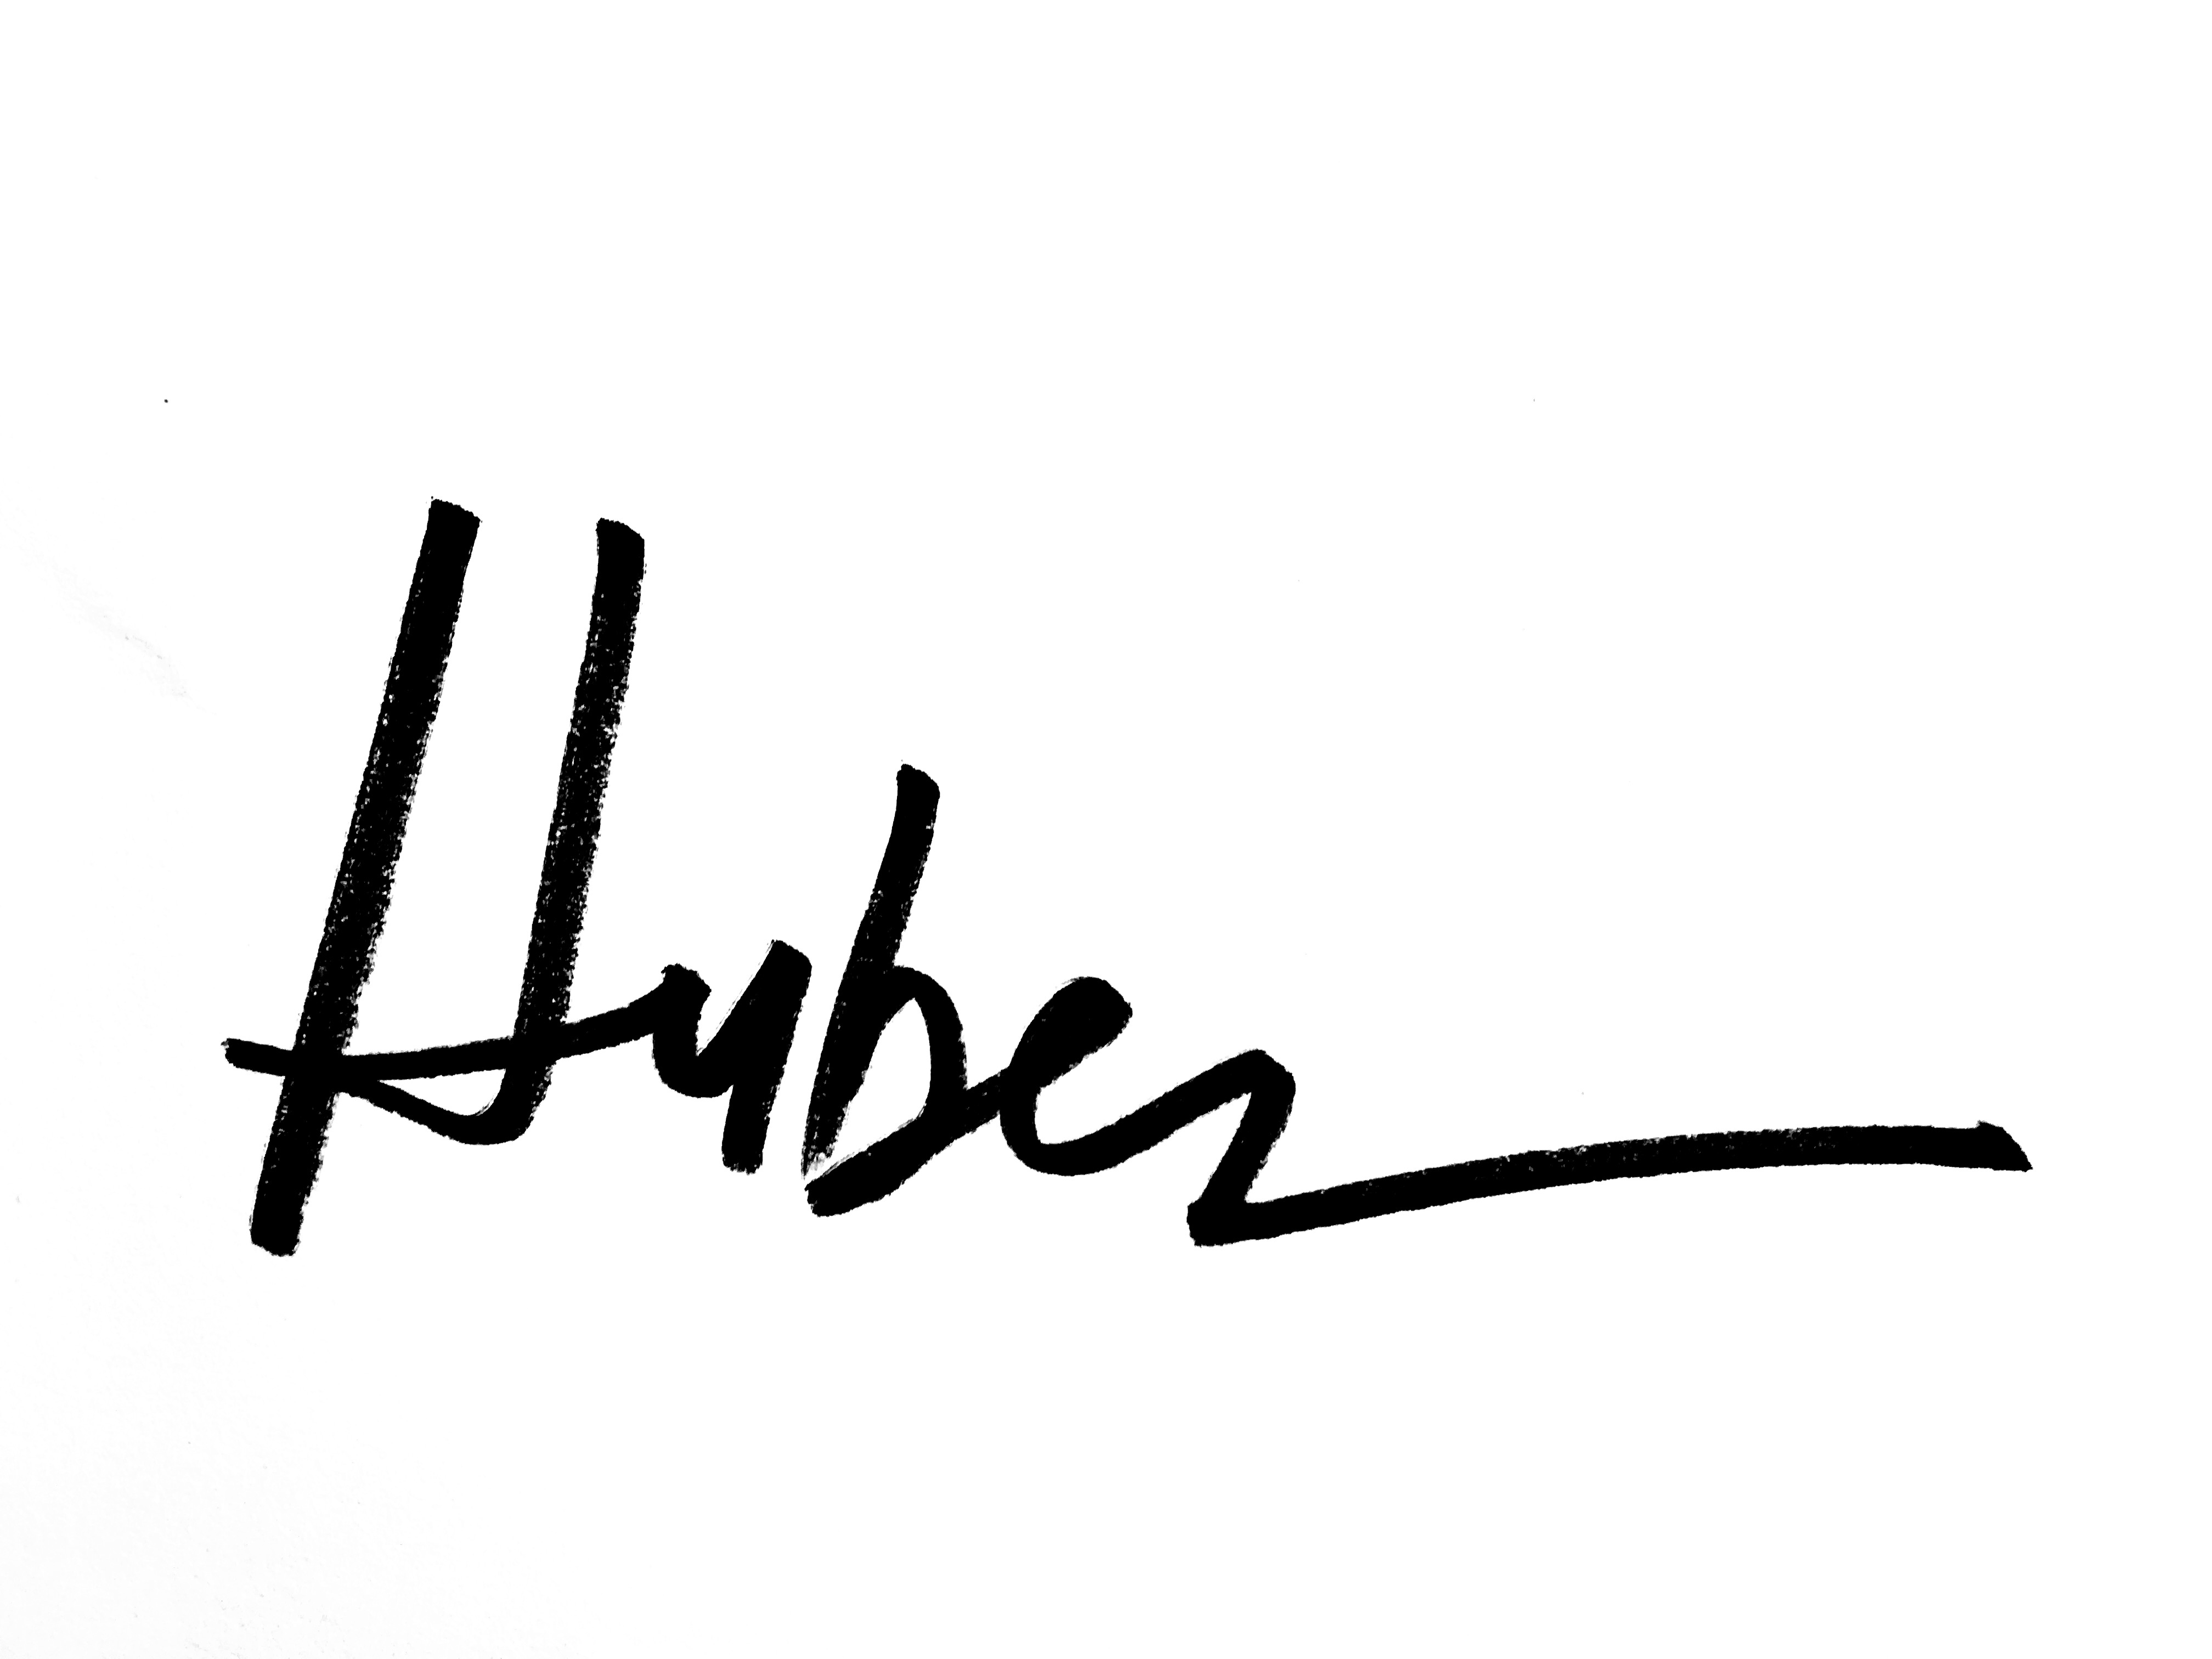 C. Anthony Huber's Signature